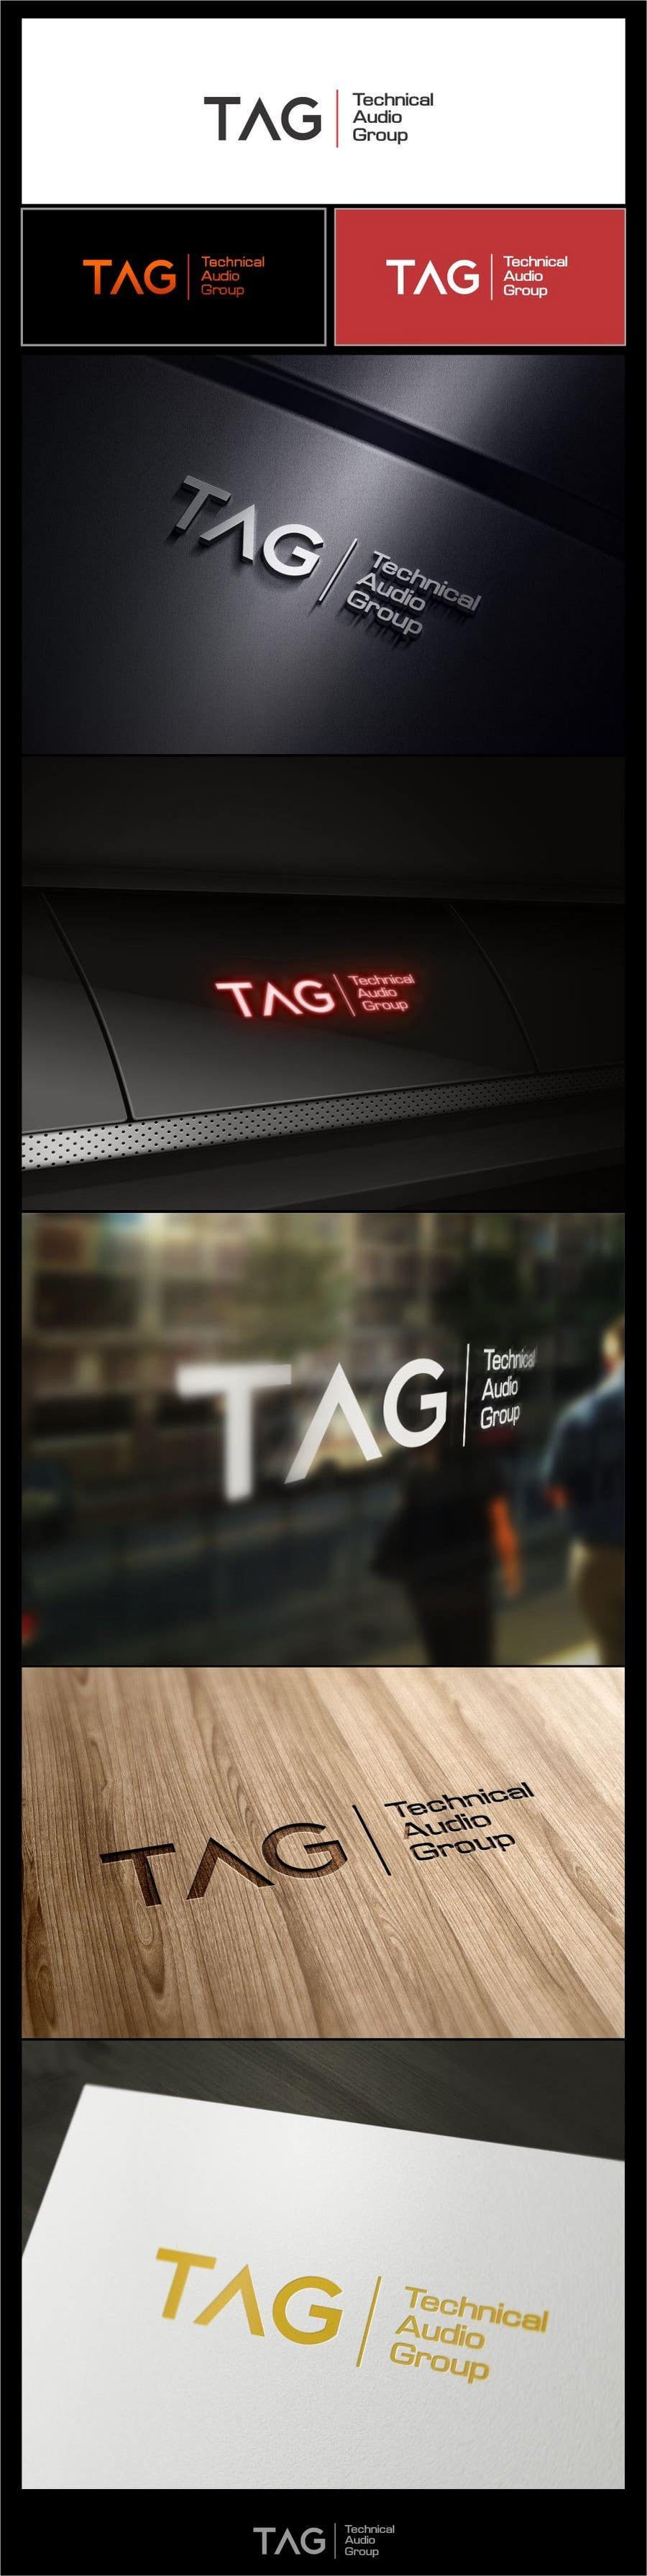 #112 for Logo Design for Technical Audio Group    TAG by timedsgn